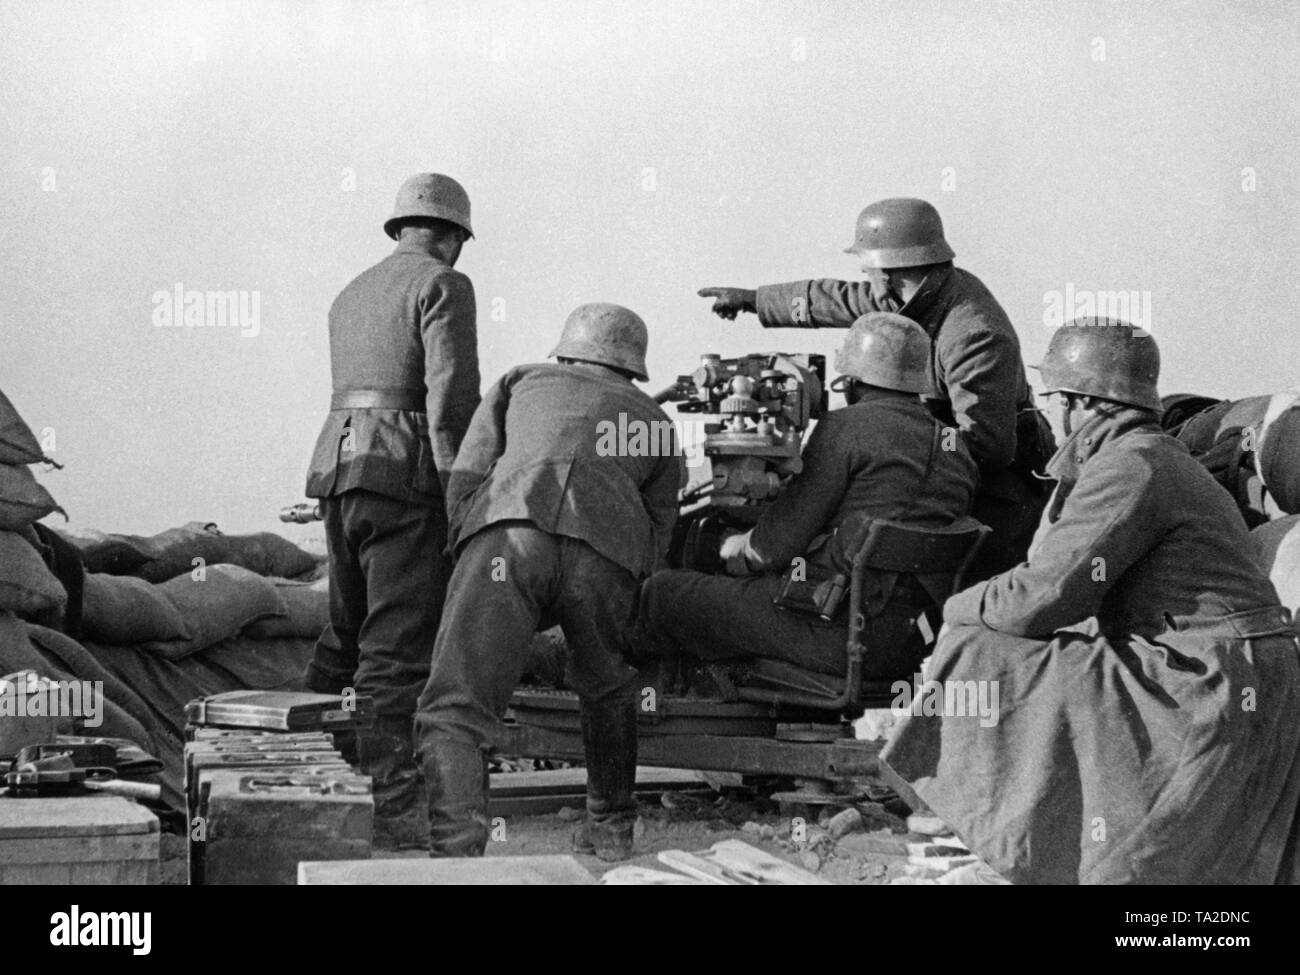 Undated photo of an anti-aircraft unit of the Condor Legion during the deployment in the Spanish Civil War. Five men are taking aim at ground targets with a 2cm FLAK 39 in a sandbag position. On the left in the front there are crates of ammunition. The soldiers are wearing M35 steel helmets. - Stock Image